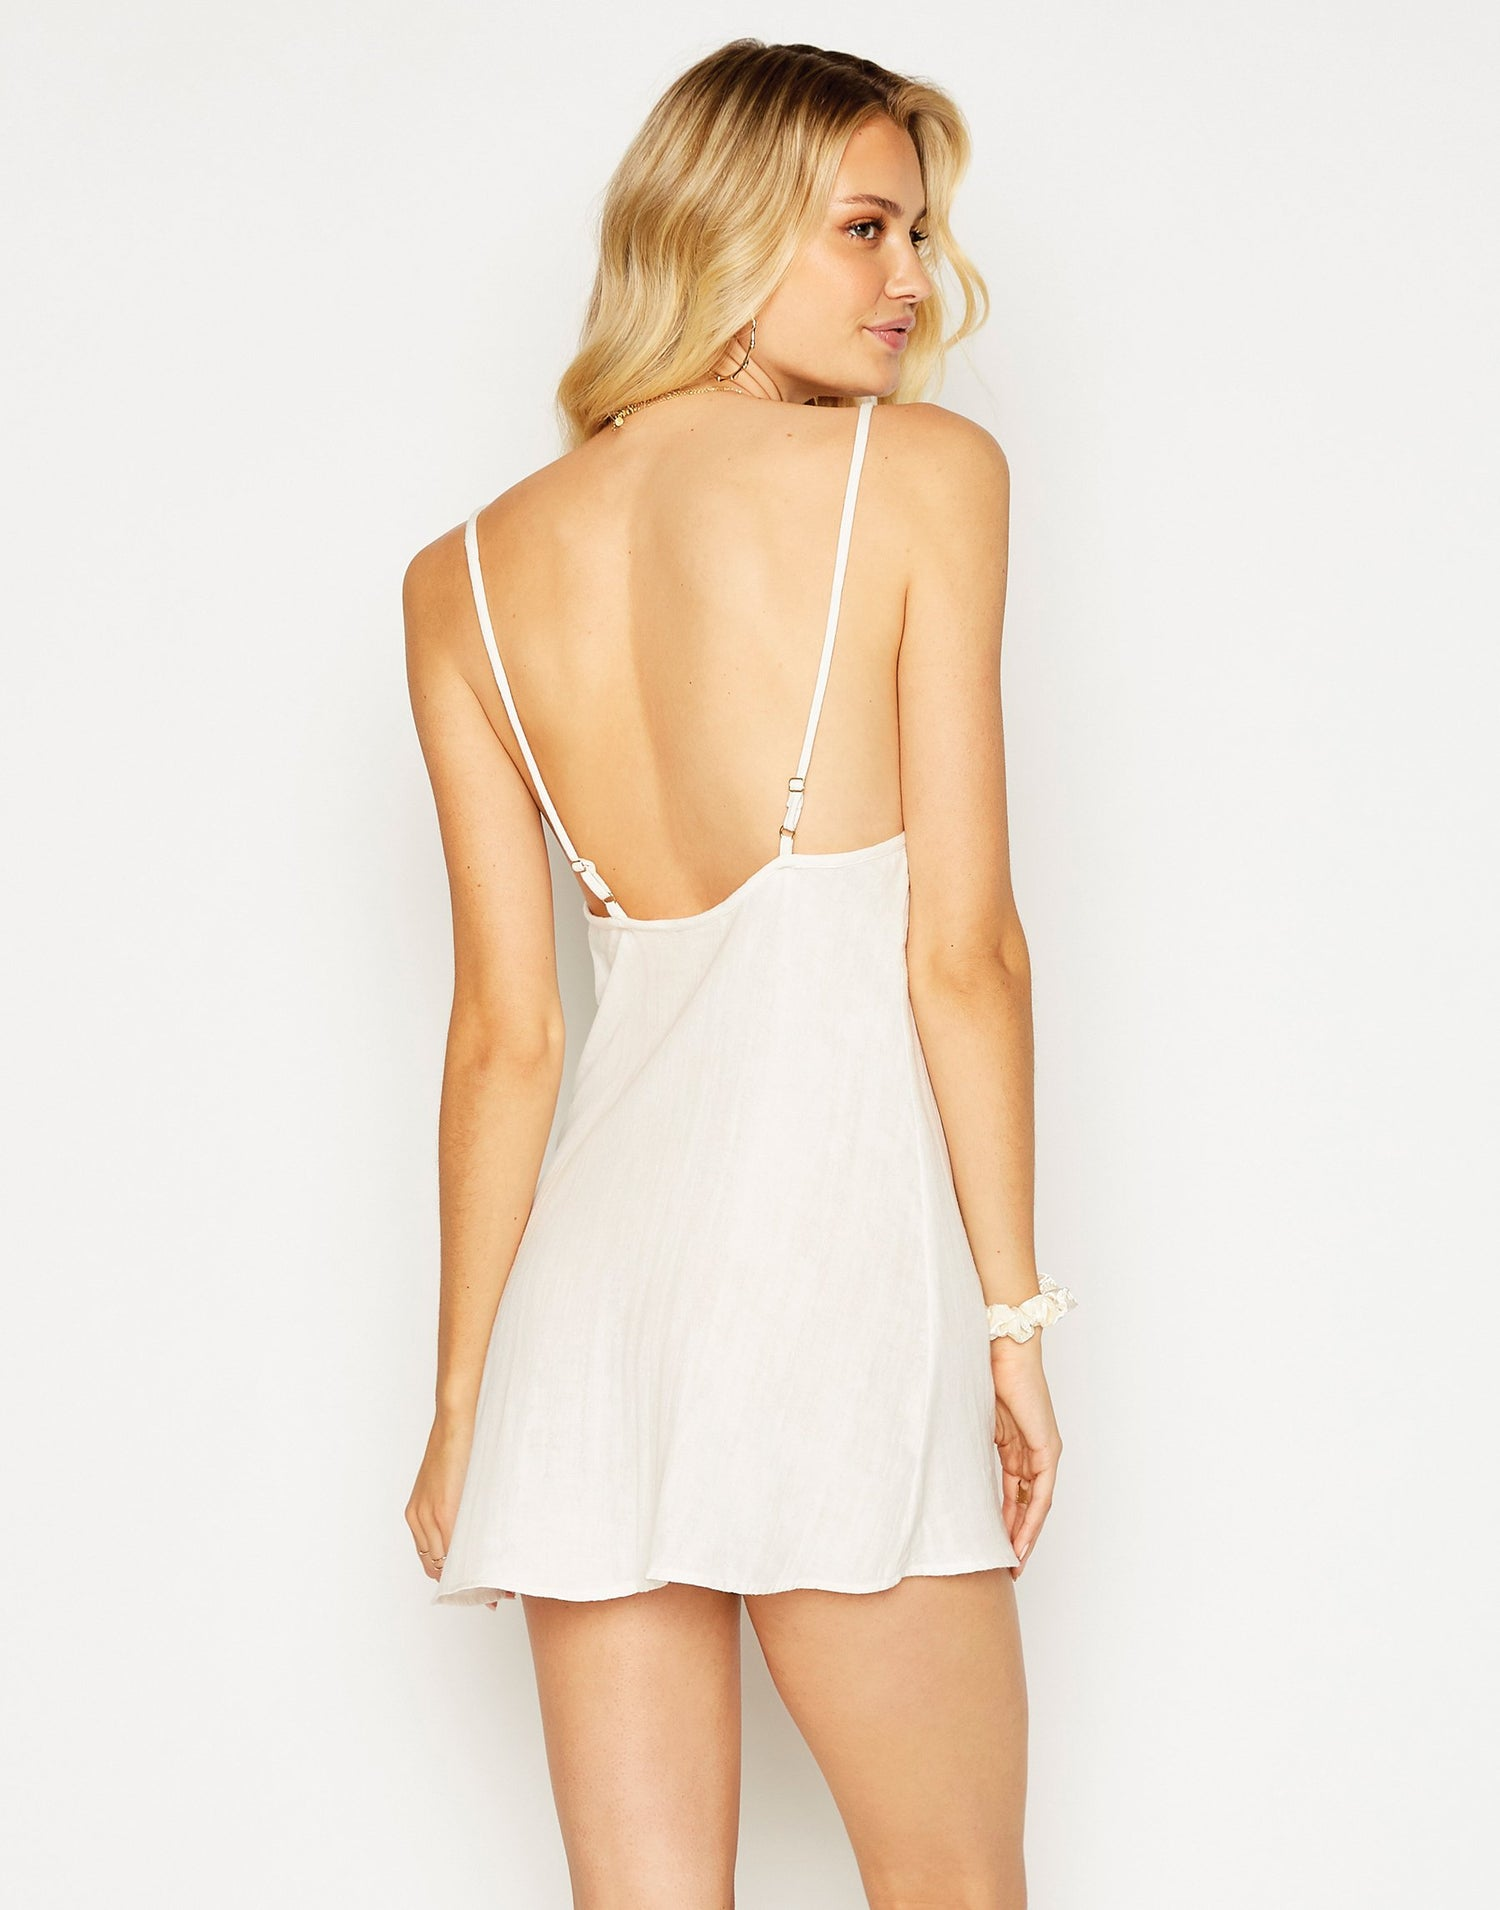 Anaya Mini Dress in Ivory with Hand Sewn Detail - back view